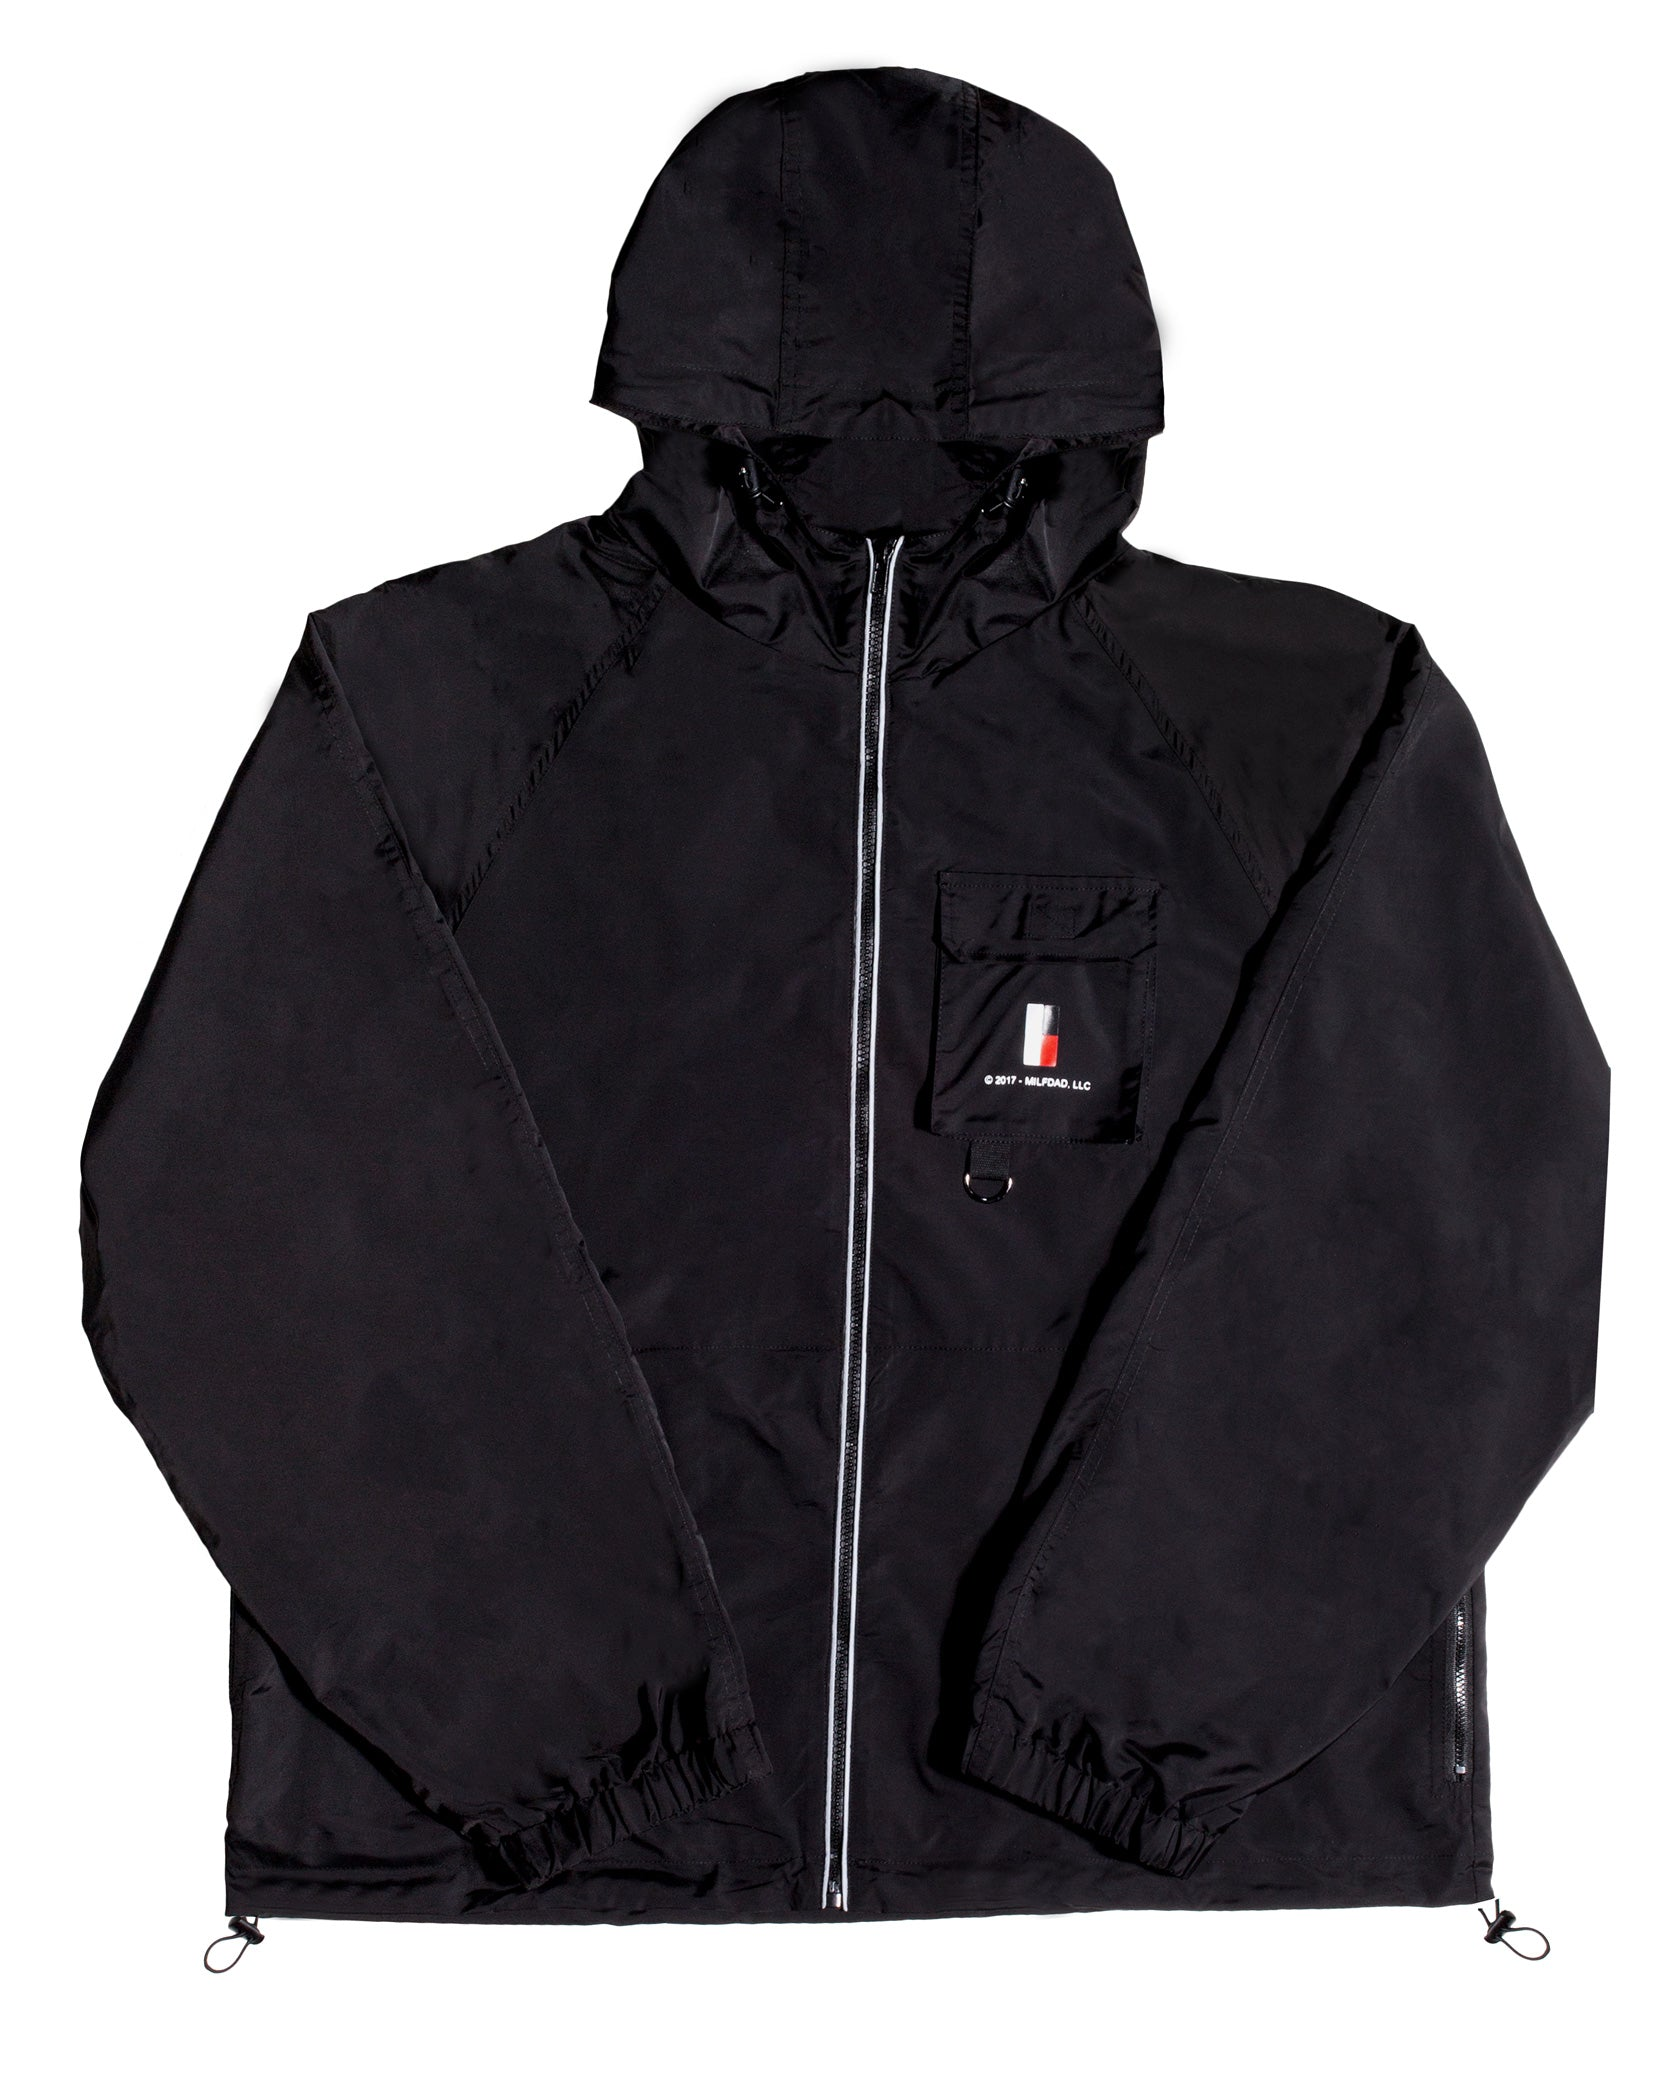 HOODED 3M WINDBREAKER - BLACK